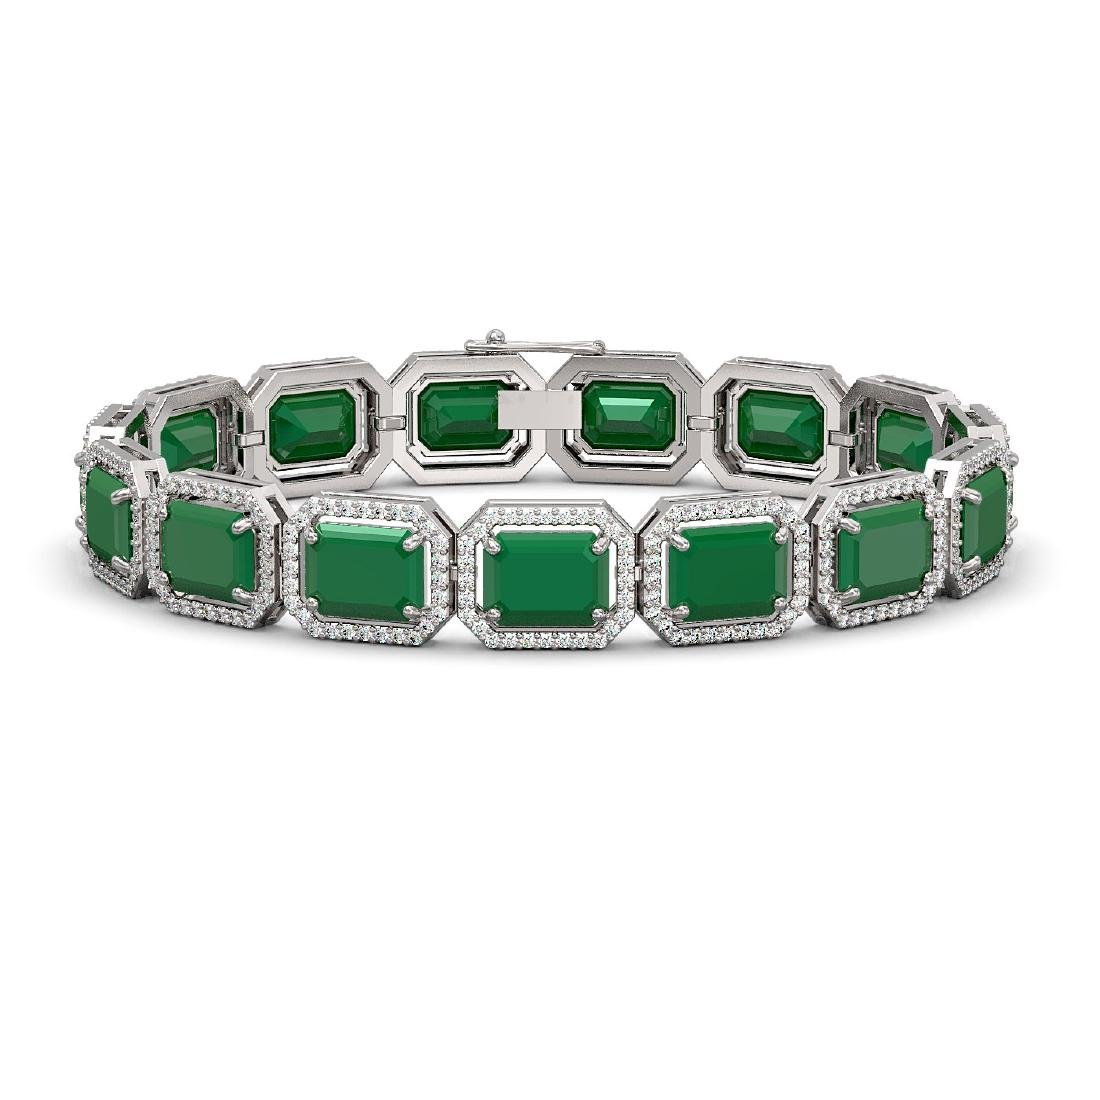 38.61 CTW Emerald & Diamond Halo Bracelet 10K White